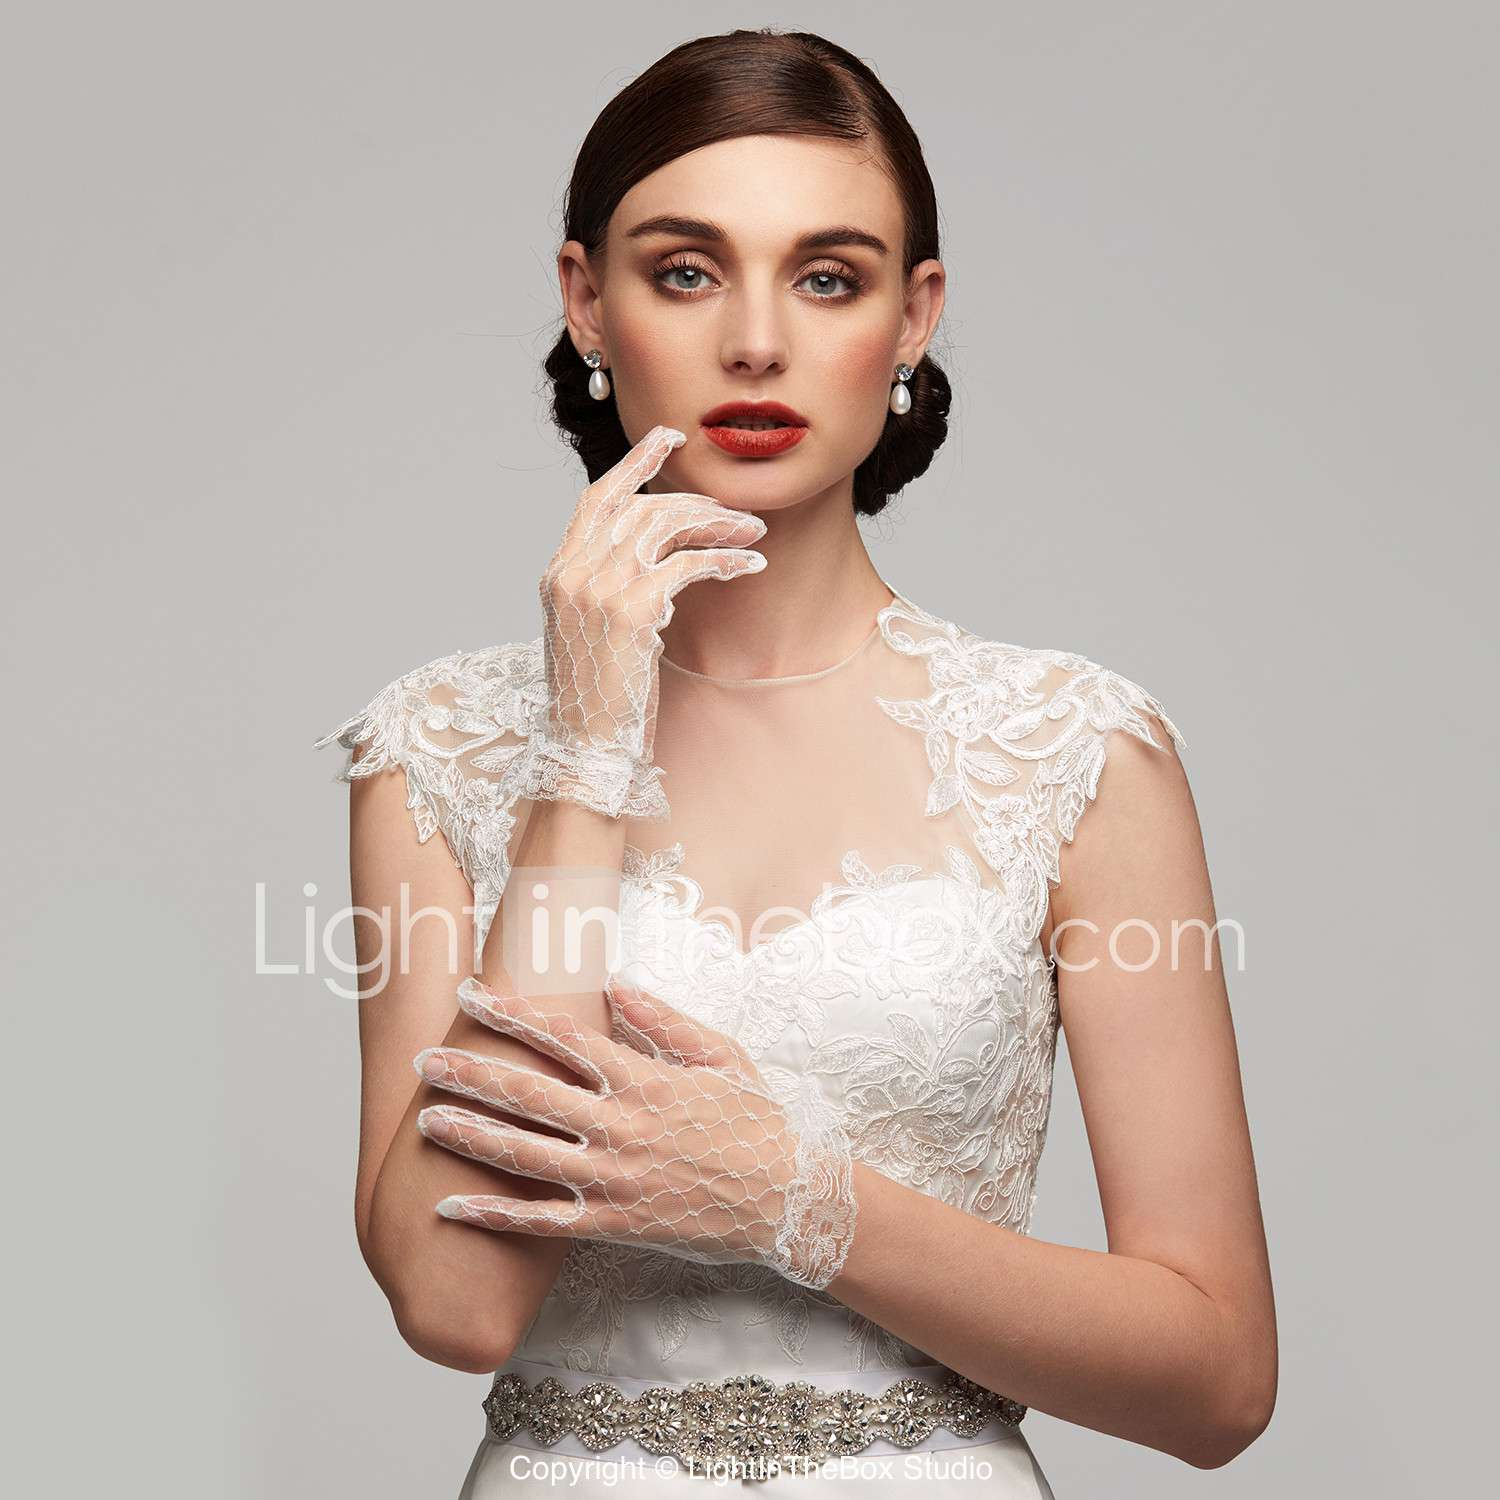 29 bridal gloves for a glamorous winter wedding look